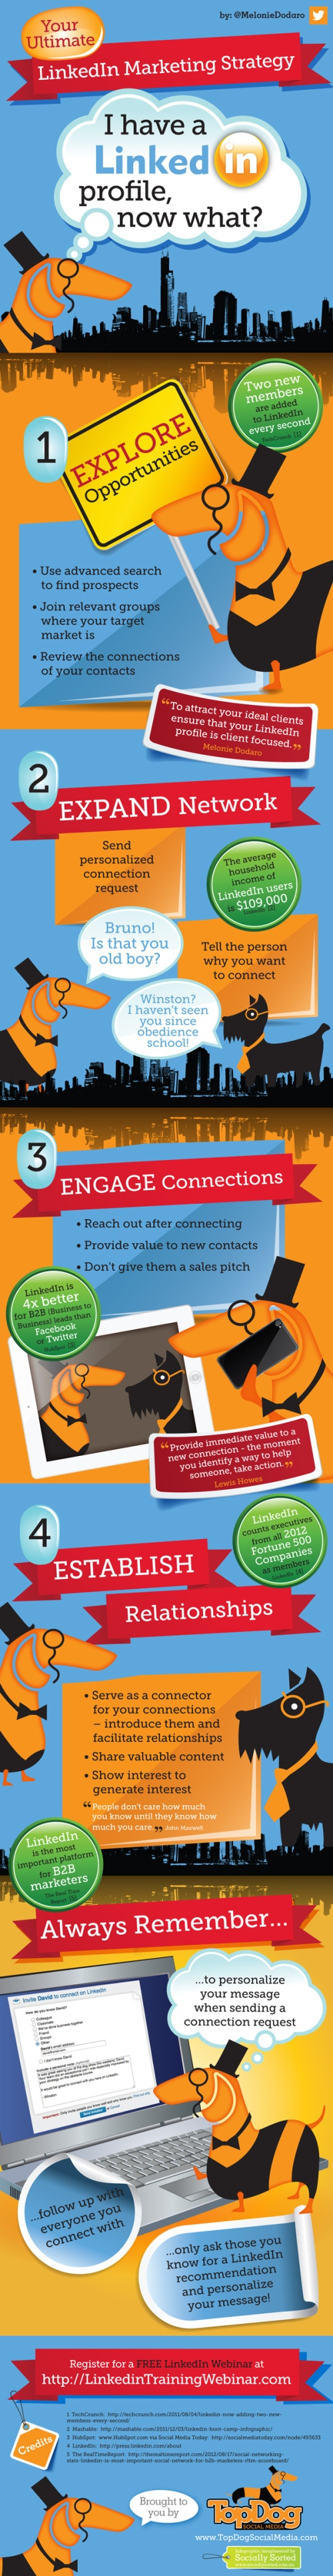 i-have-a-linkedin-profile-now-what-infographic_515c780ff2db8